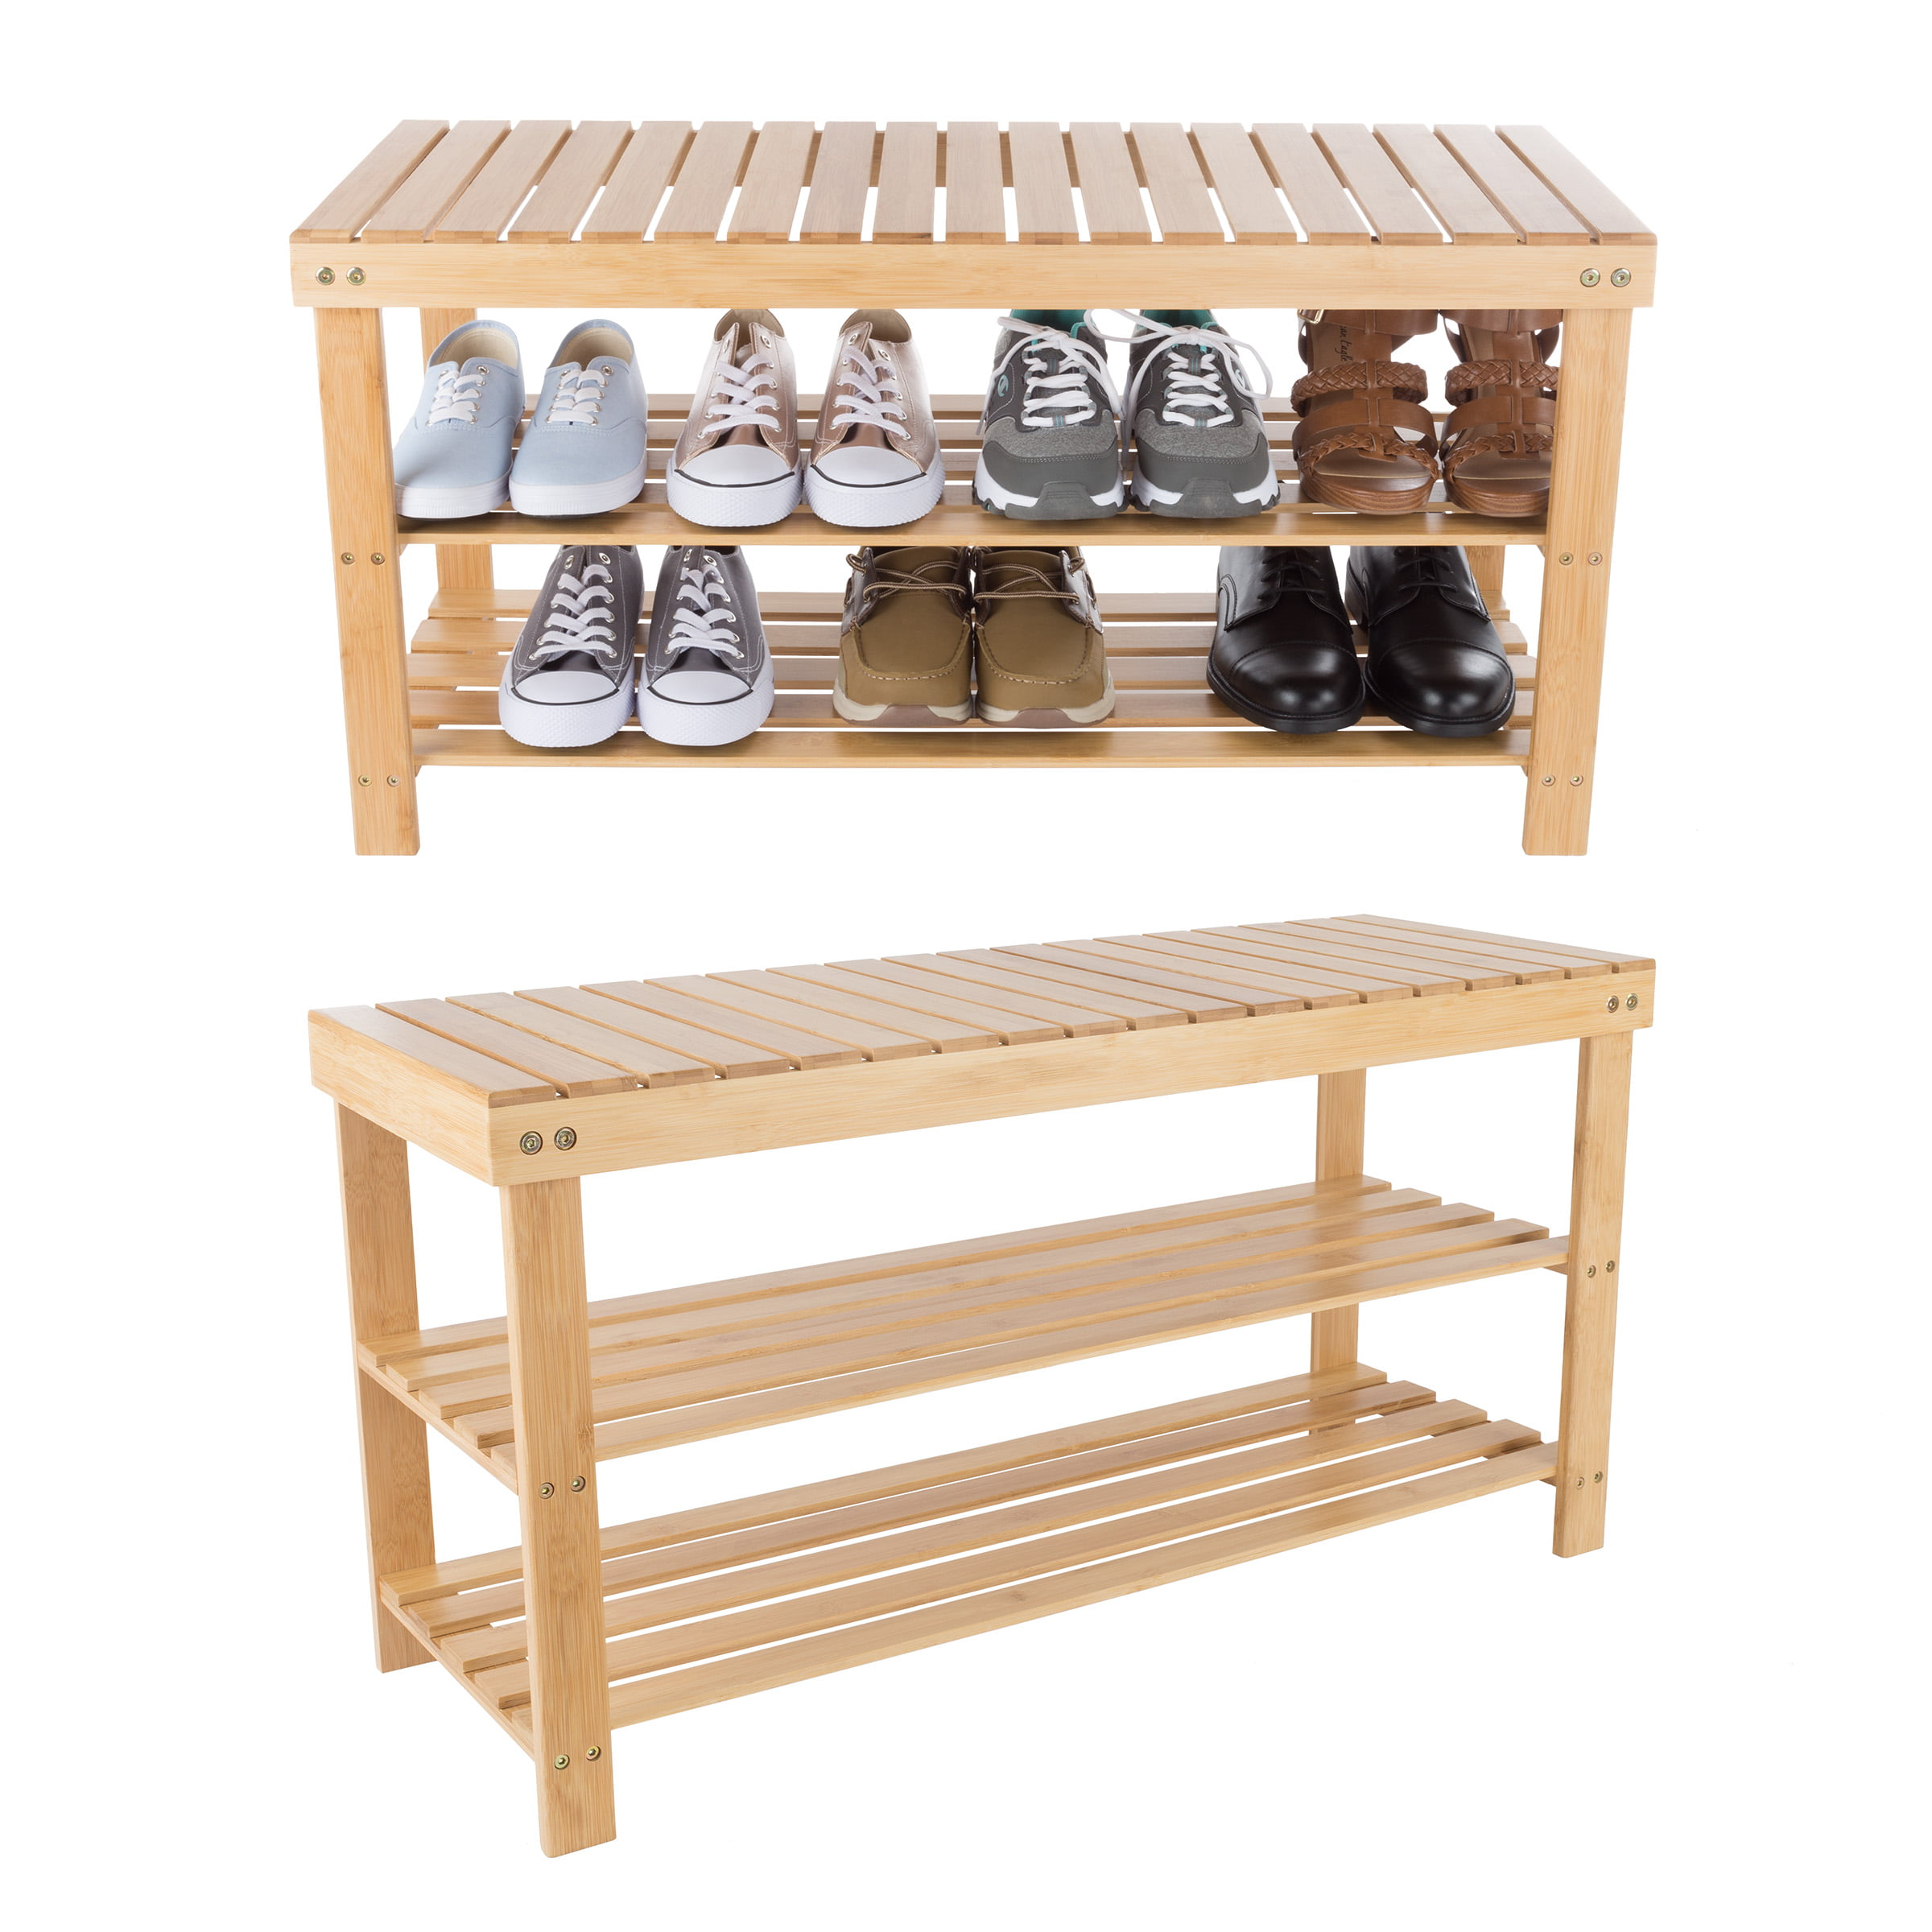 Picture of: Bamboo Shoe Rack Bench With 2 Shelves Eco Friendly Natural Wood Seat Storage And Organization For Bedroom Entryway Hallways Closets By Lavish Home Walmart Com Walmart Com